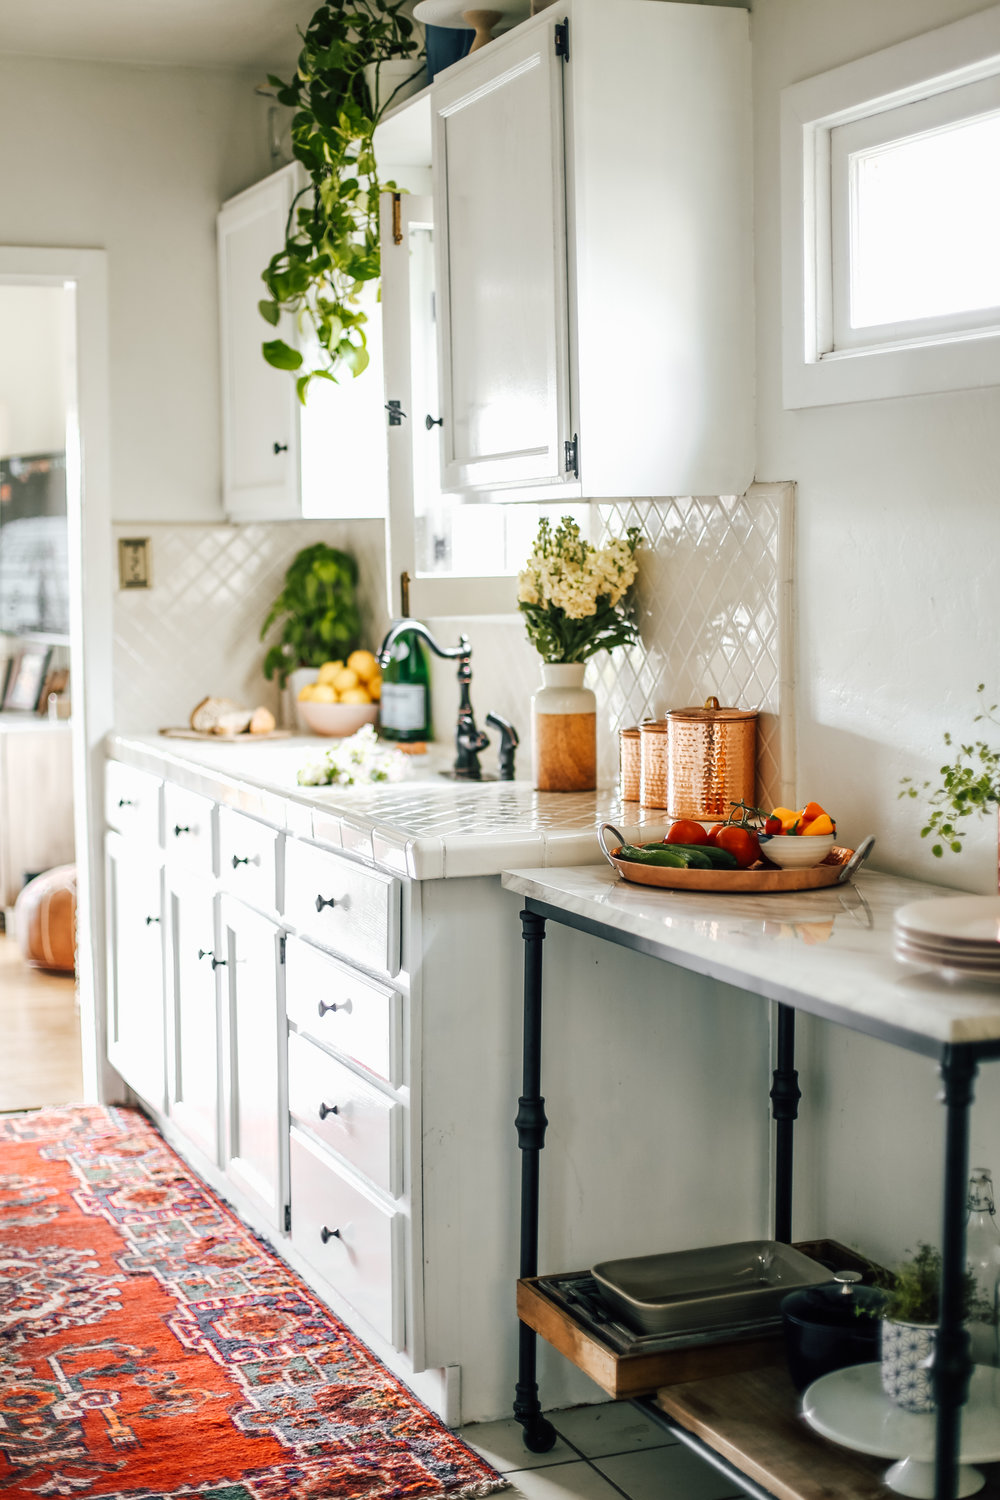 My Rental Kitchen: Finished Makeover, tips and ideas! — College ...